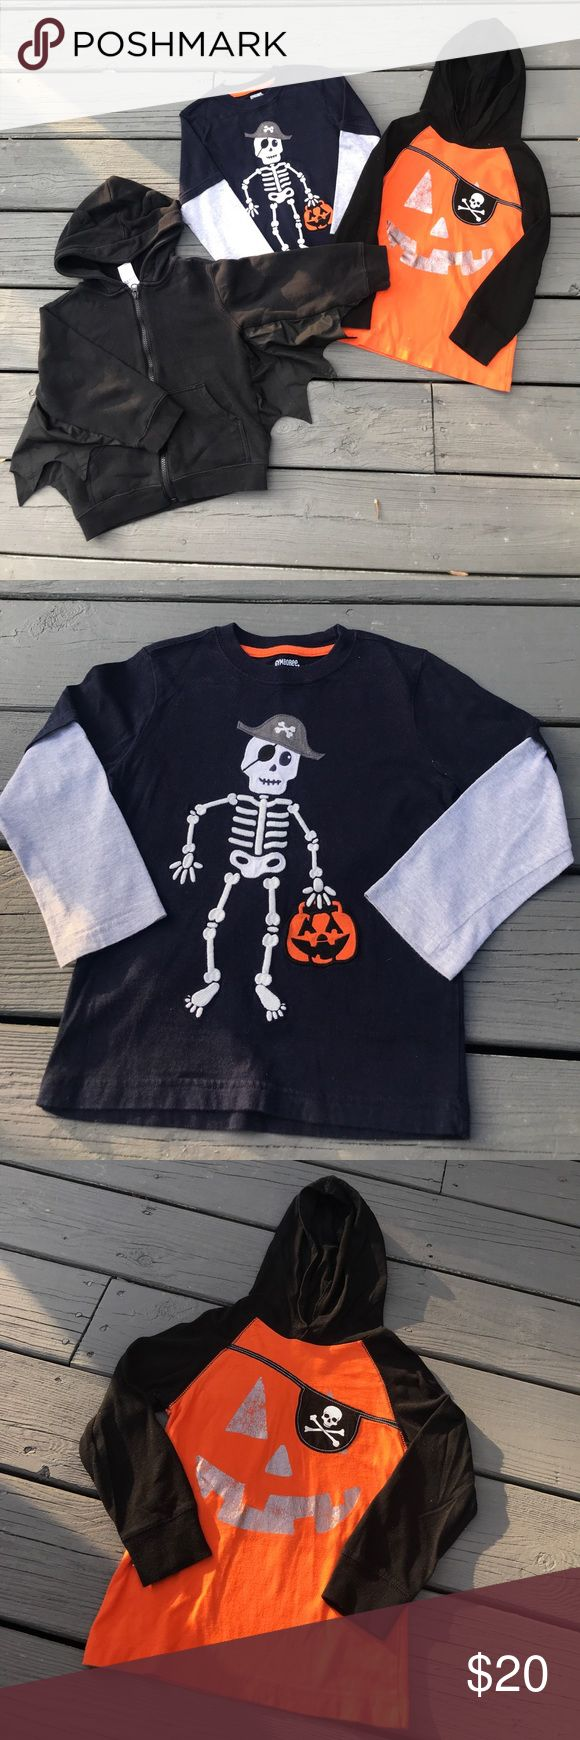 Gymboree Halloween Bundle 3 great Gymboree Halloween tops in one listing. Black batwing zip up hoodie w/ ears on hoodie. 88% Cotton/12% polyester. Navy & grey long sleeved skeleton embroidered tee (100% Cotton). Orange pirate jack-o-lantern Long Sleeved Hoodie tee (100% Cotton). All 3 in great condition - only worn a handful of times during the Halloween season last year! Hoodie is a 4T and Tees are both a size 4. Gymboree Shirts & Tops Tees - Long Sleeve